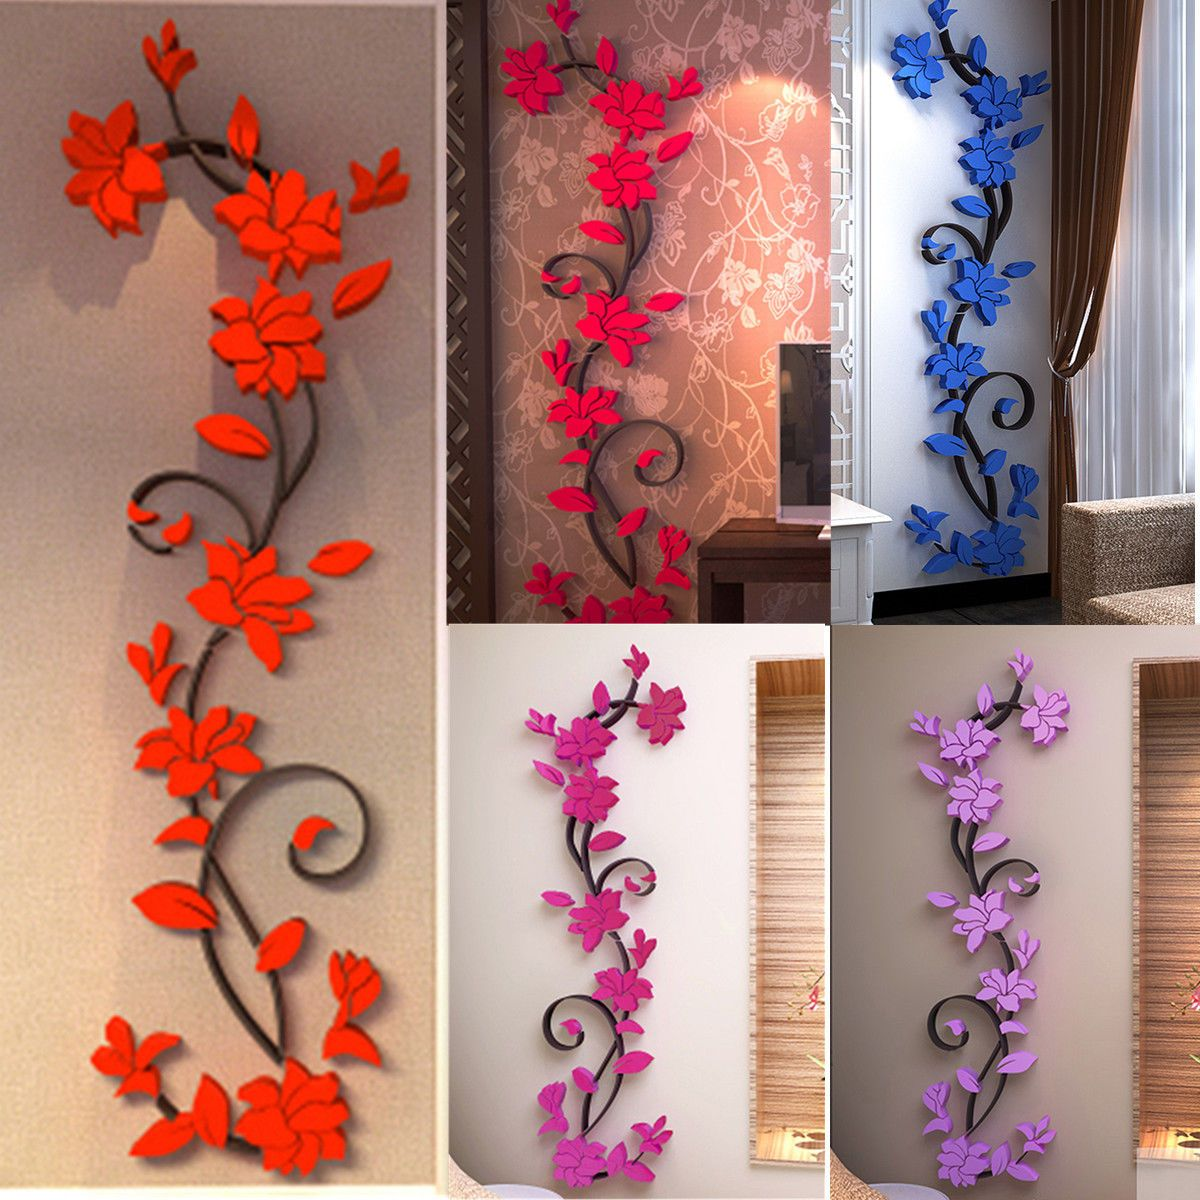 flower home  room decor diy wall sticker removable acrylic decal mural also rh za pinterest